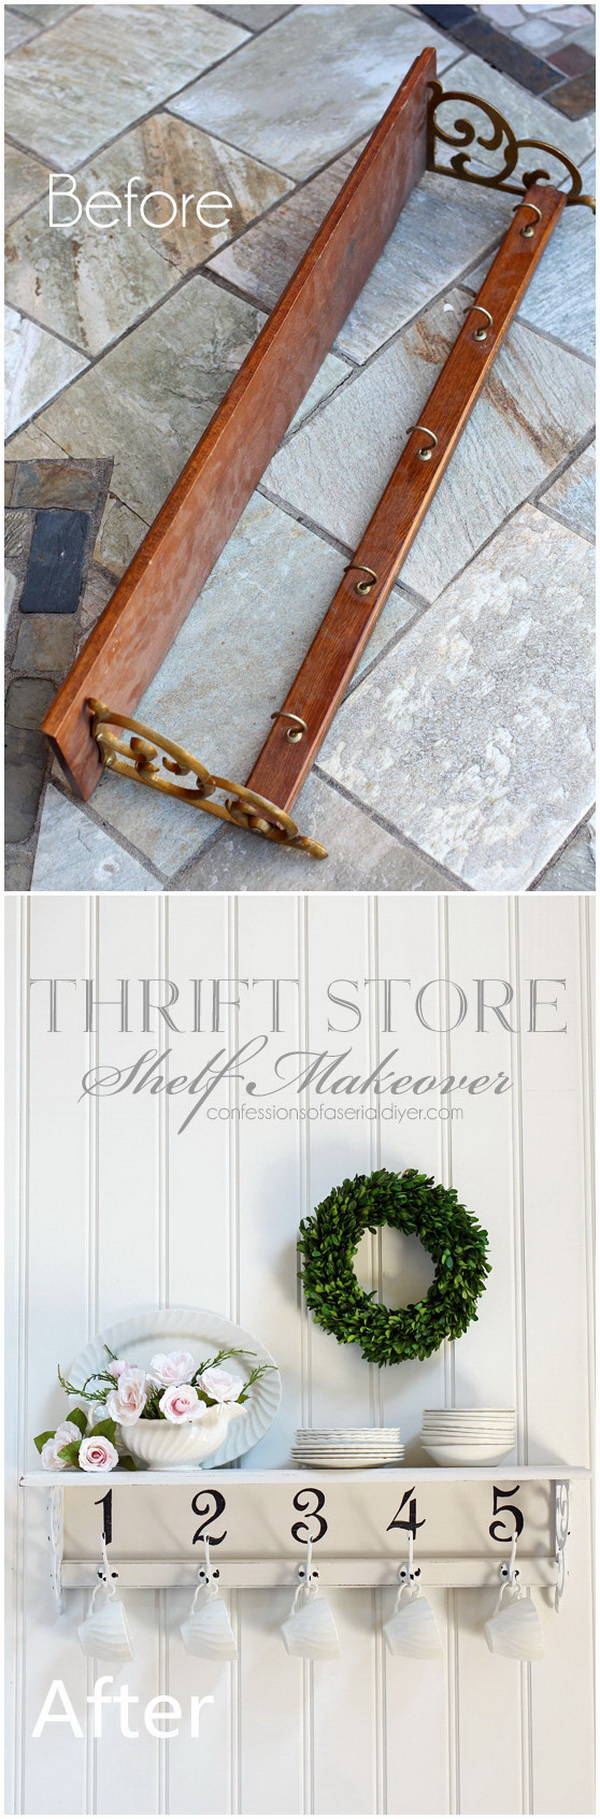 Funiture Makeovers: Thrift Store Shelf Makeover.